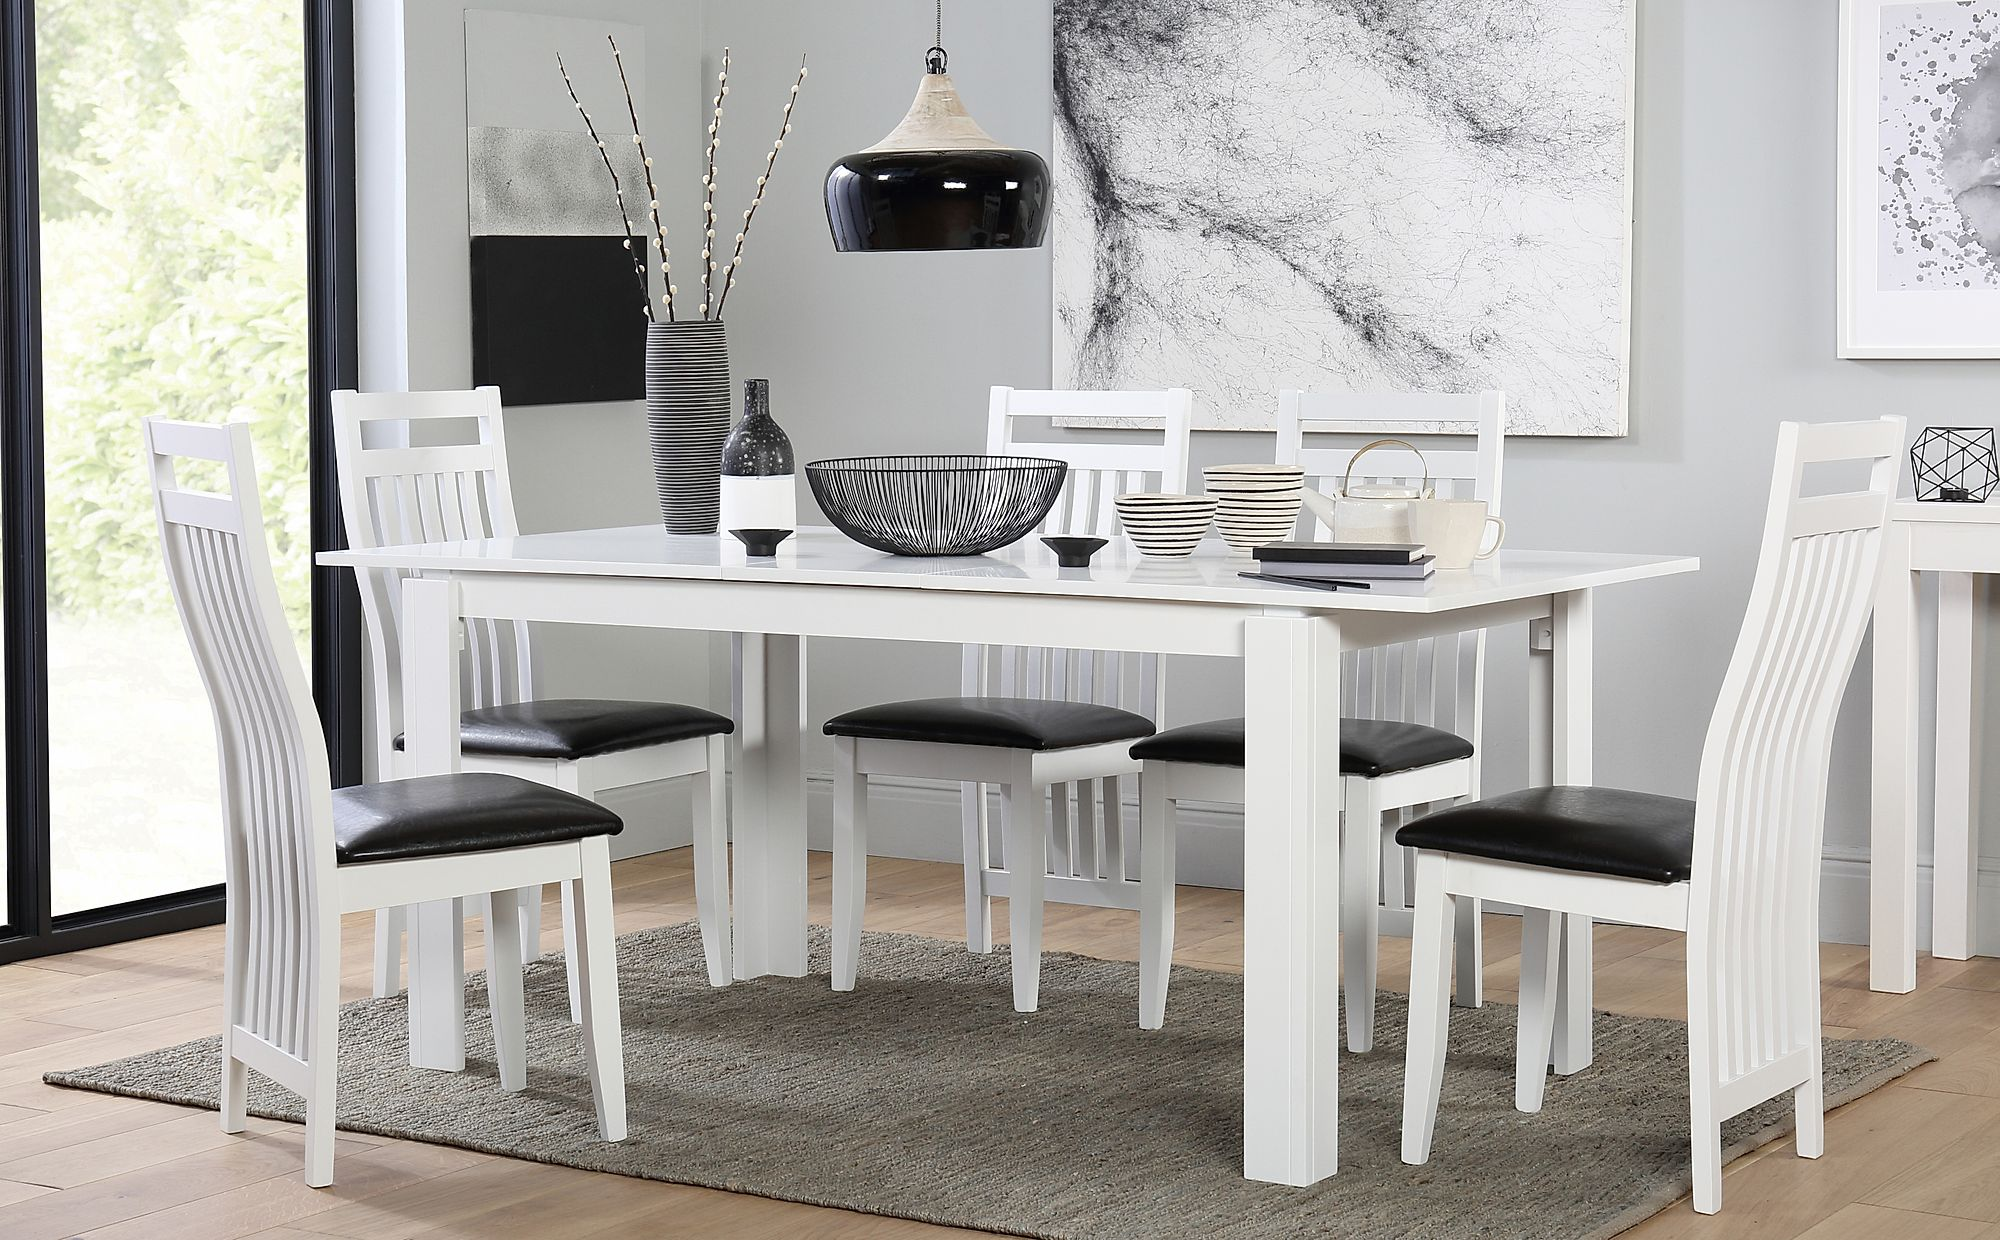 White Table And Chairs Set: Aspen White Extending Dining Table And 4 Chairs Set (Java